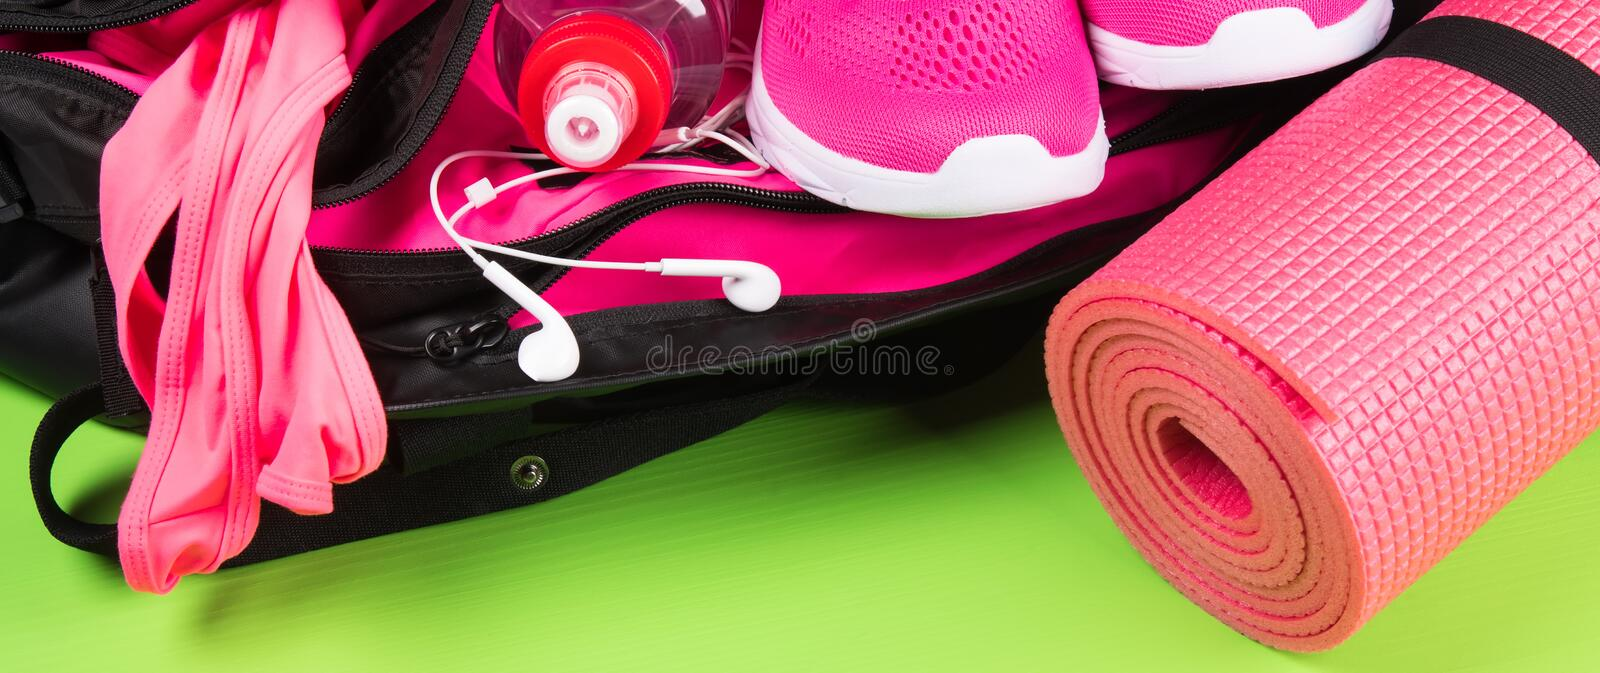 Bag with things for fitness on the green floor, long photo stock photos